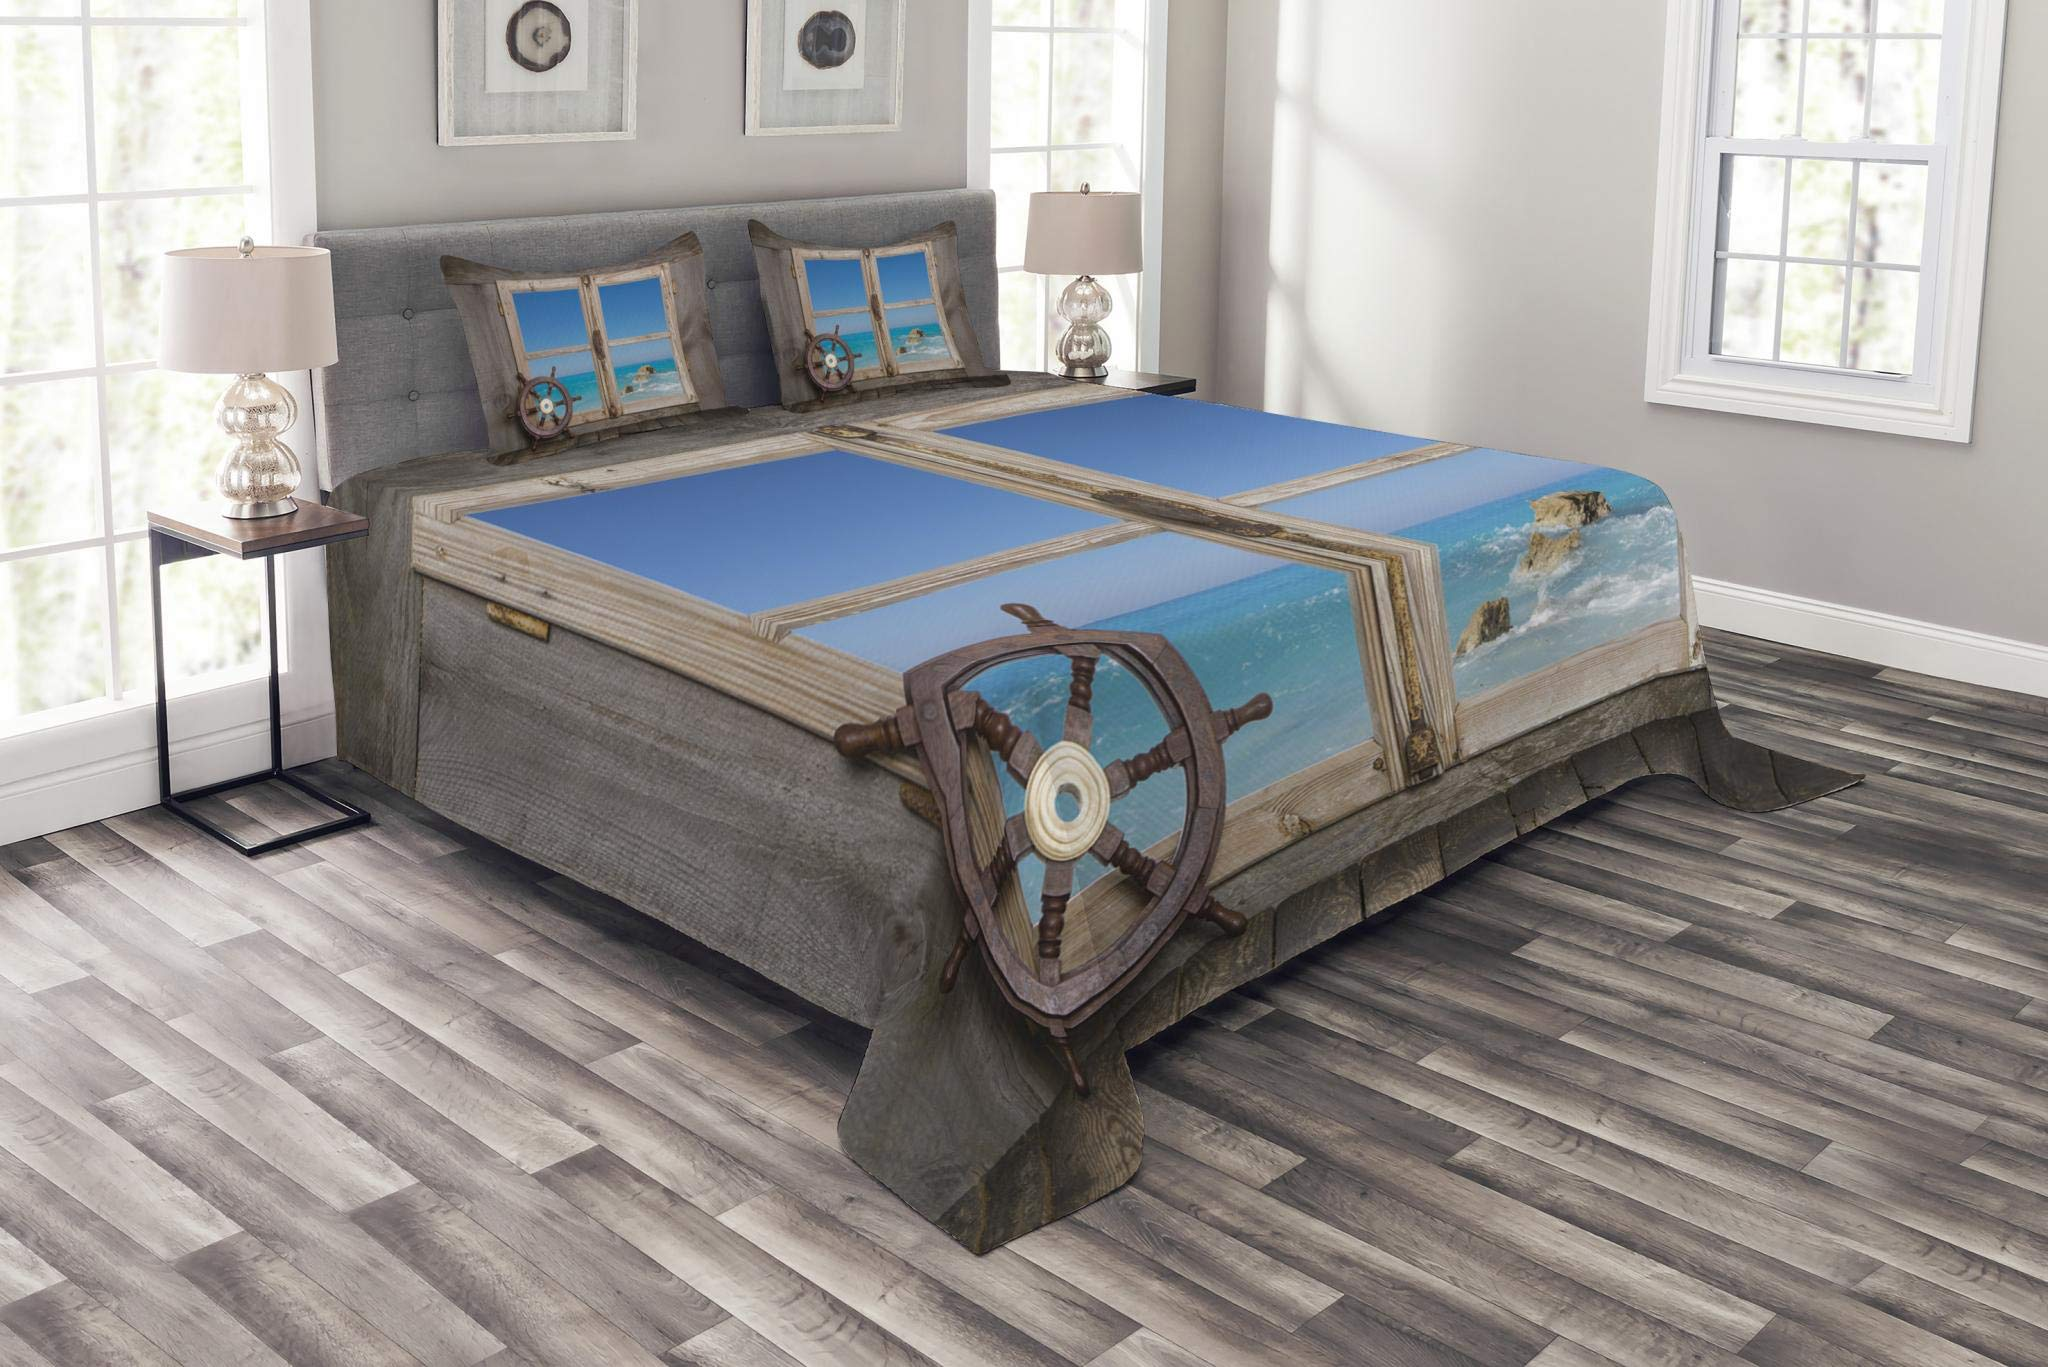 Lunarable Holiday Bedspread Set King Size, View Through Wooden Window with Seascape Ocean Holiday Steering Wheel Maritime, Decorative Quilted 3 Piece Coverlet Set with 2 Pillow Shams, Taupe Blue